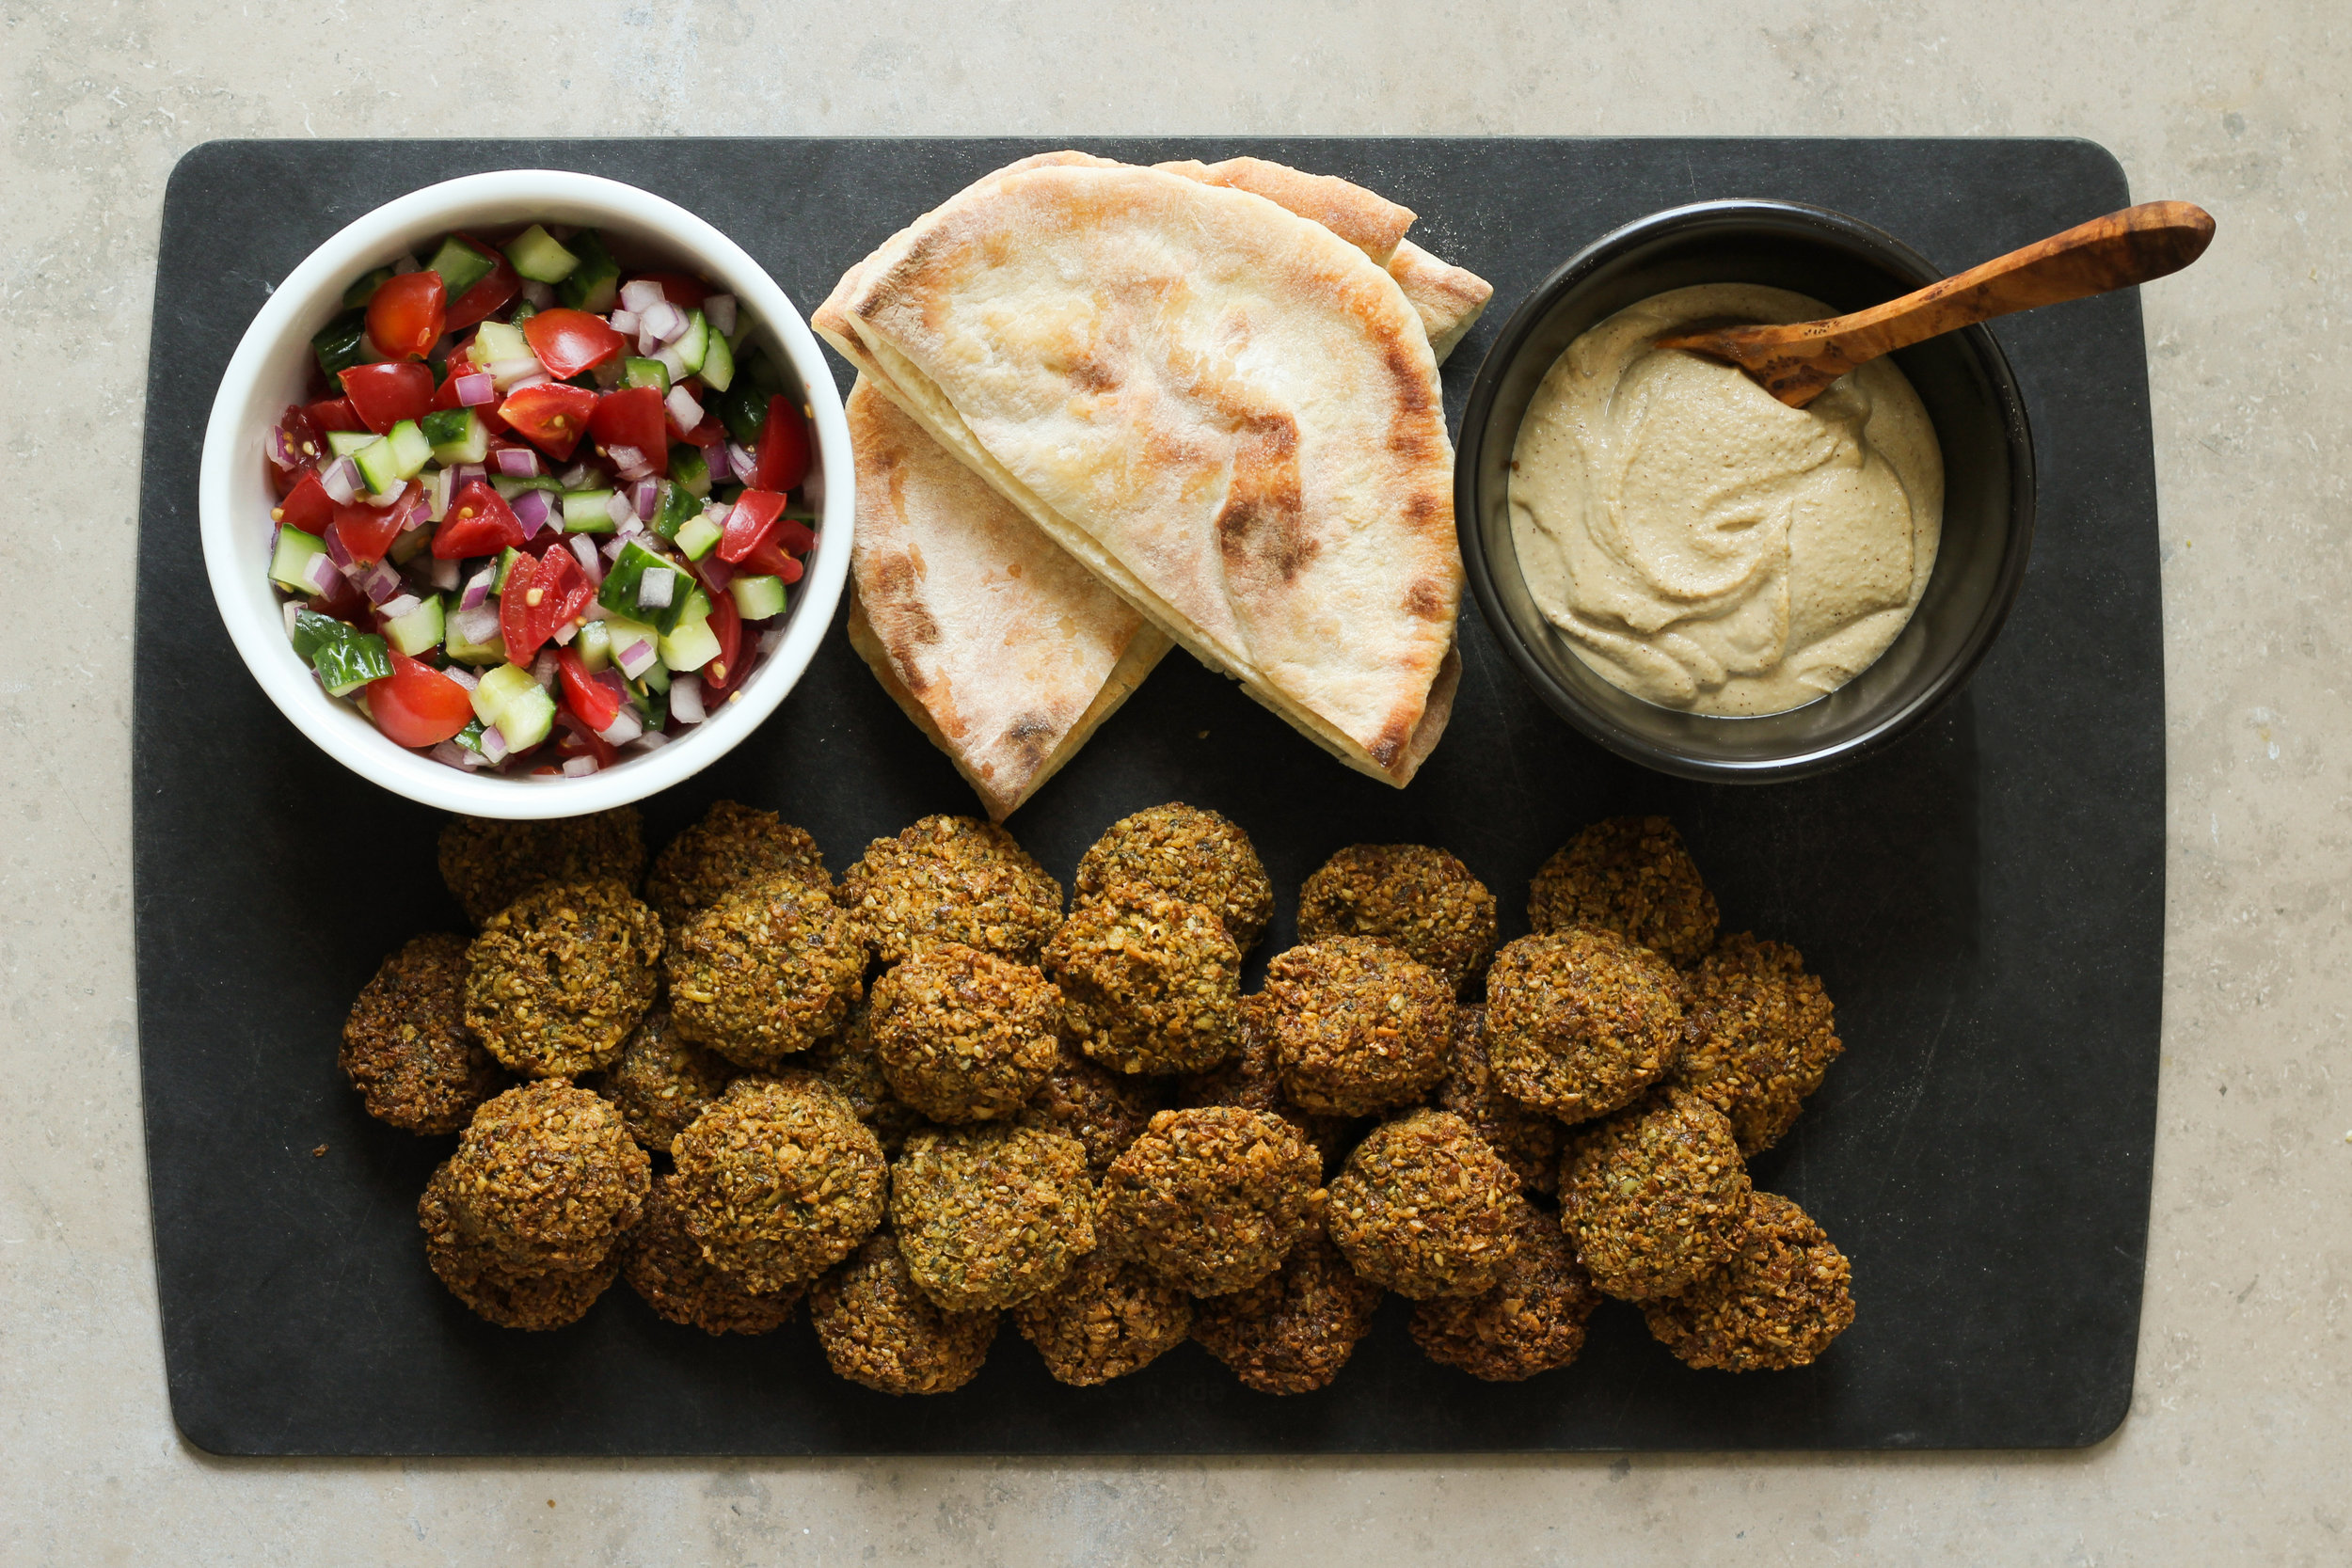 Falafel plate from Cardamom and Tea. Photo credit: Kathryn Pauline